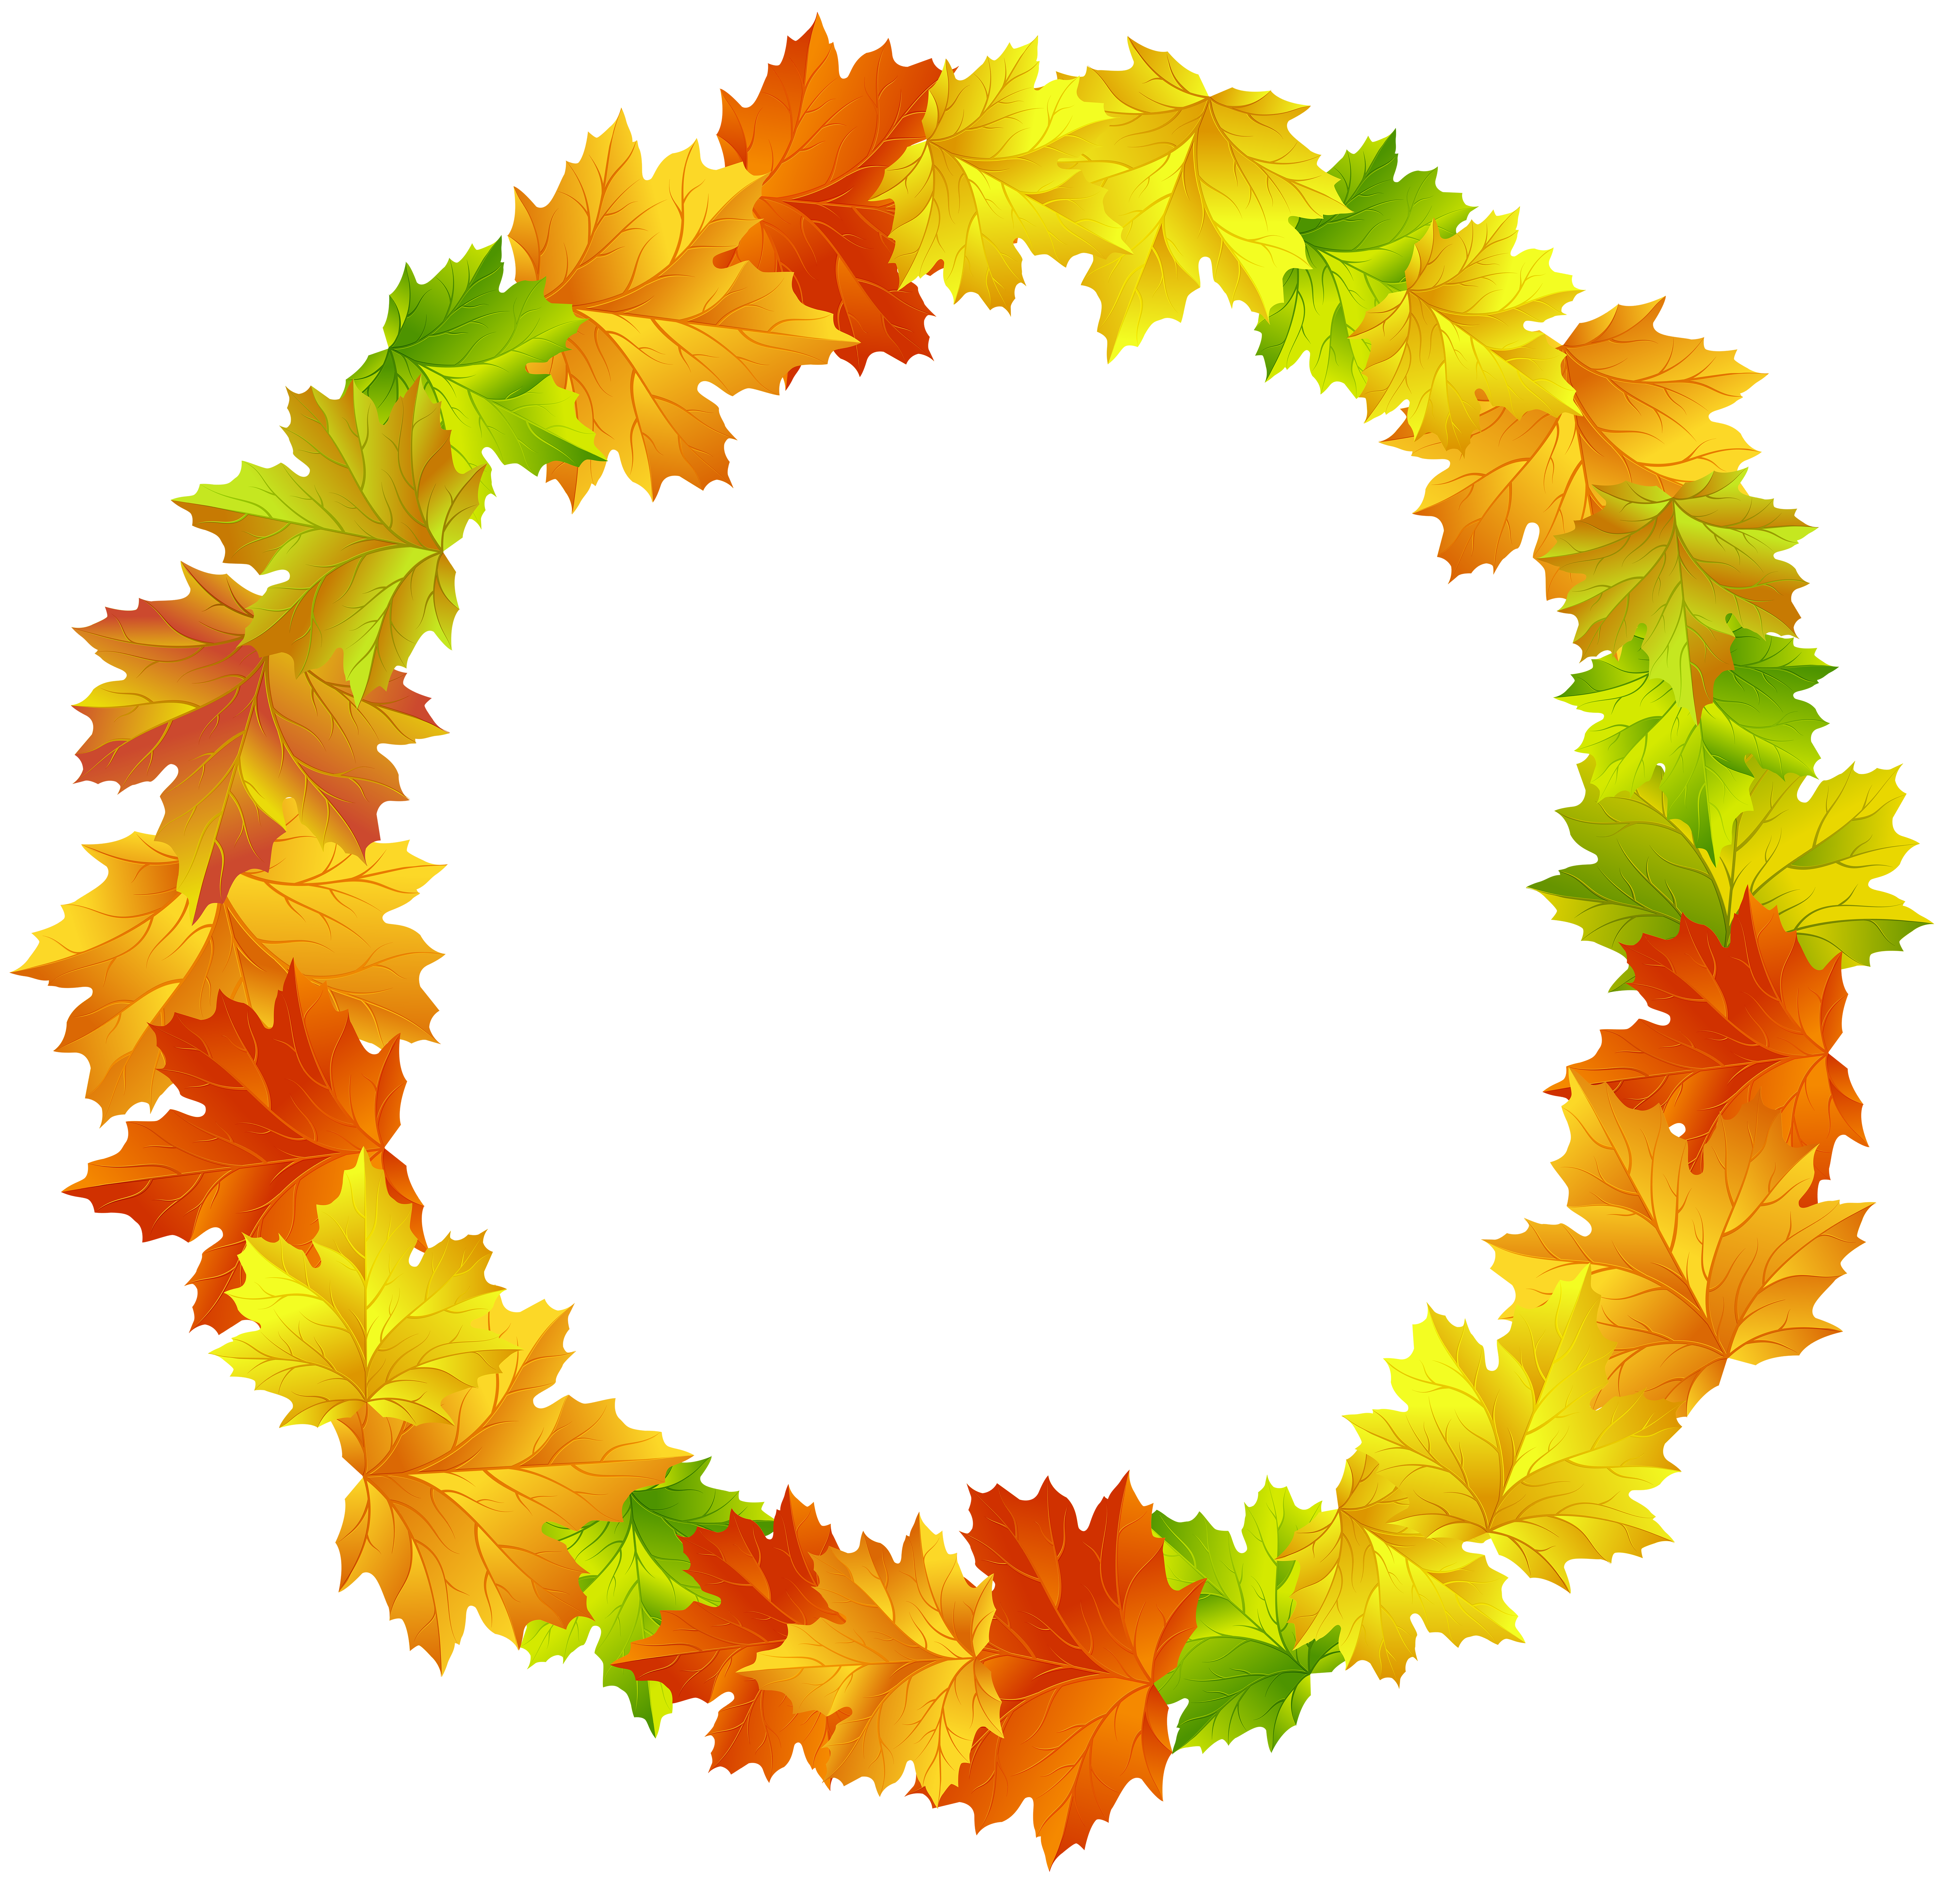 Fall leaf border png. Leaves round frame clip